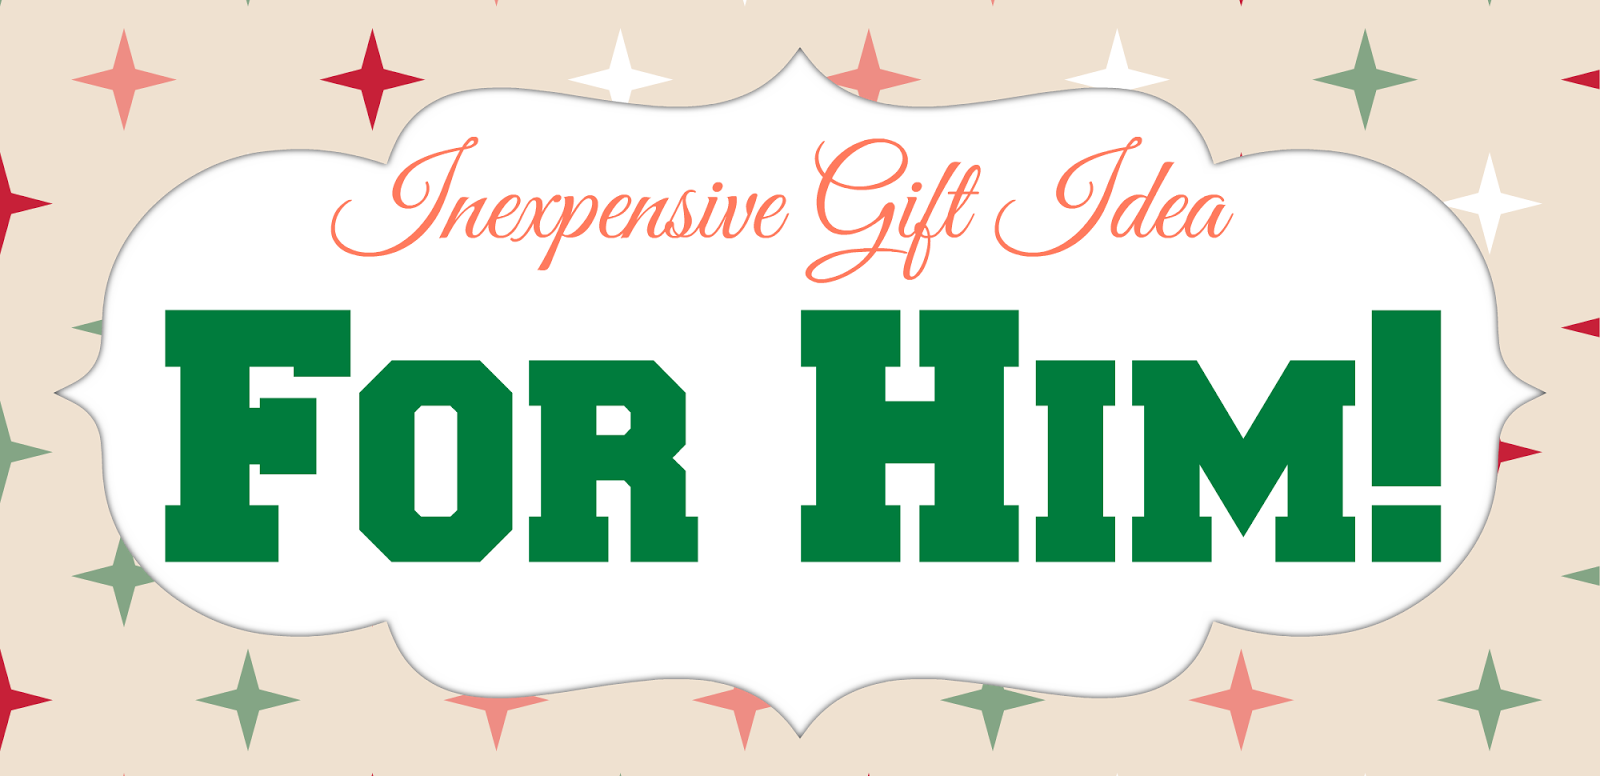 Orchard girls inexpensive christmas gifts for the whole family